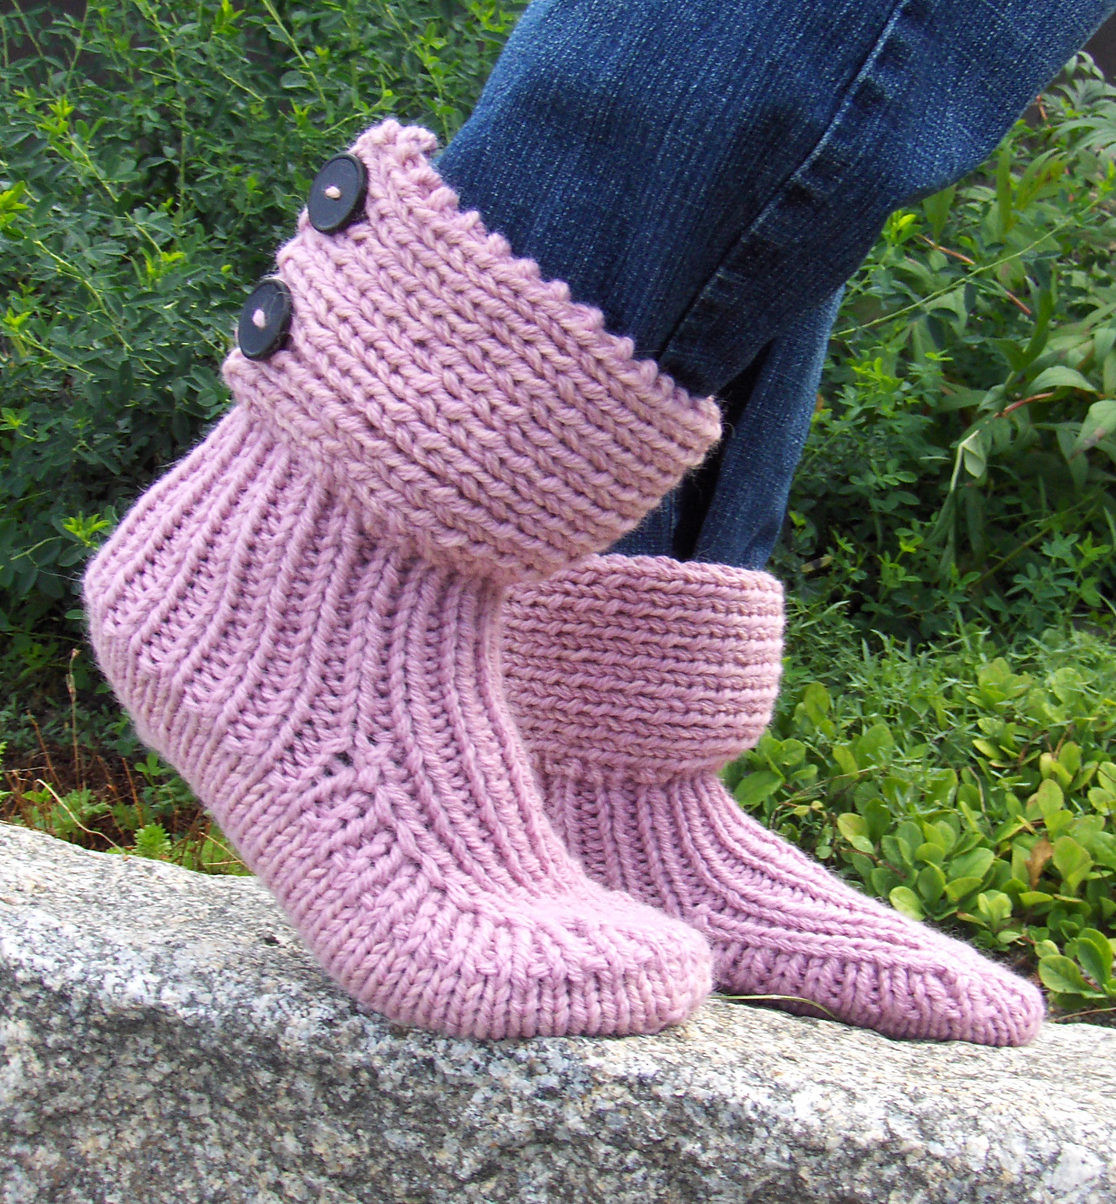 Sock Knitting Pattern Best Of Slipper socks and Boots Knitting Patterns Of Unique 41 Photos sock Knitting Pattern